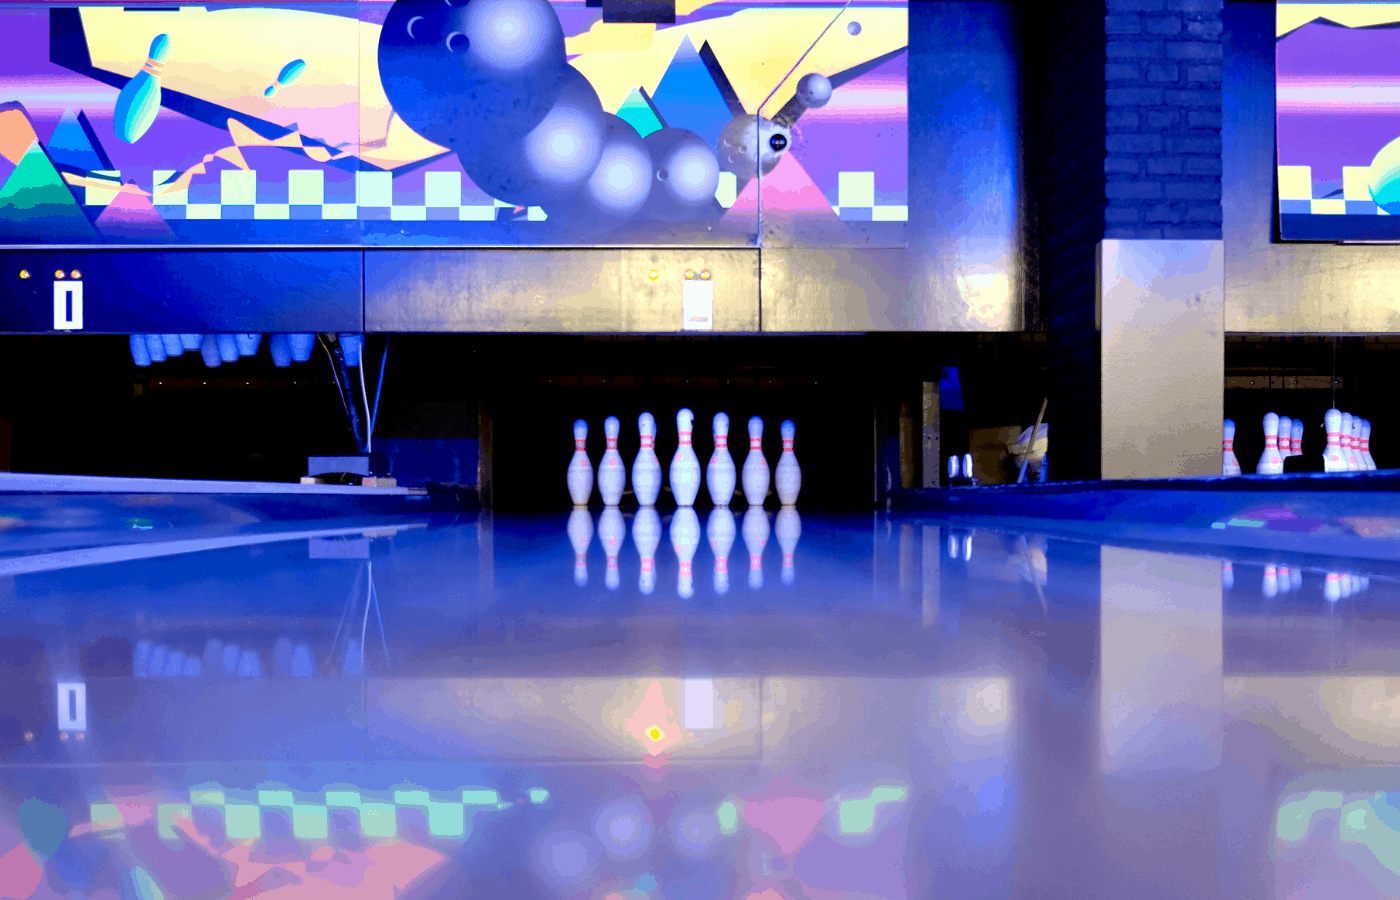 why are bowling animations so weird